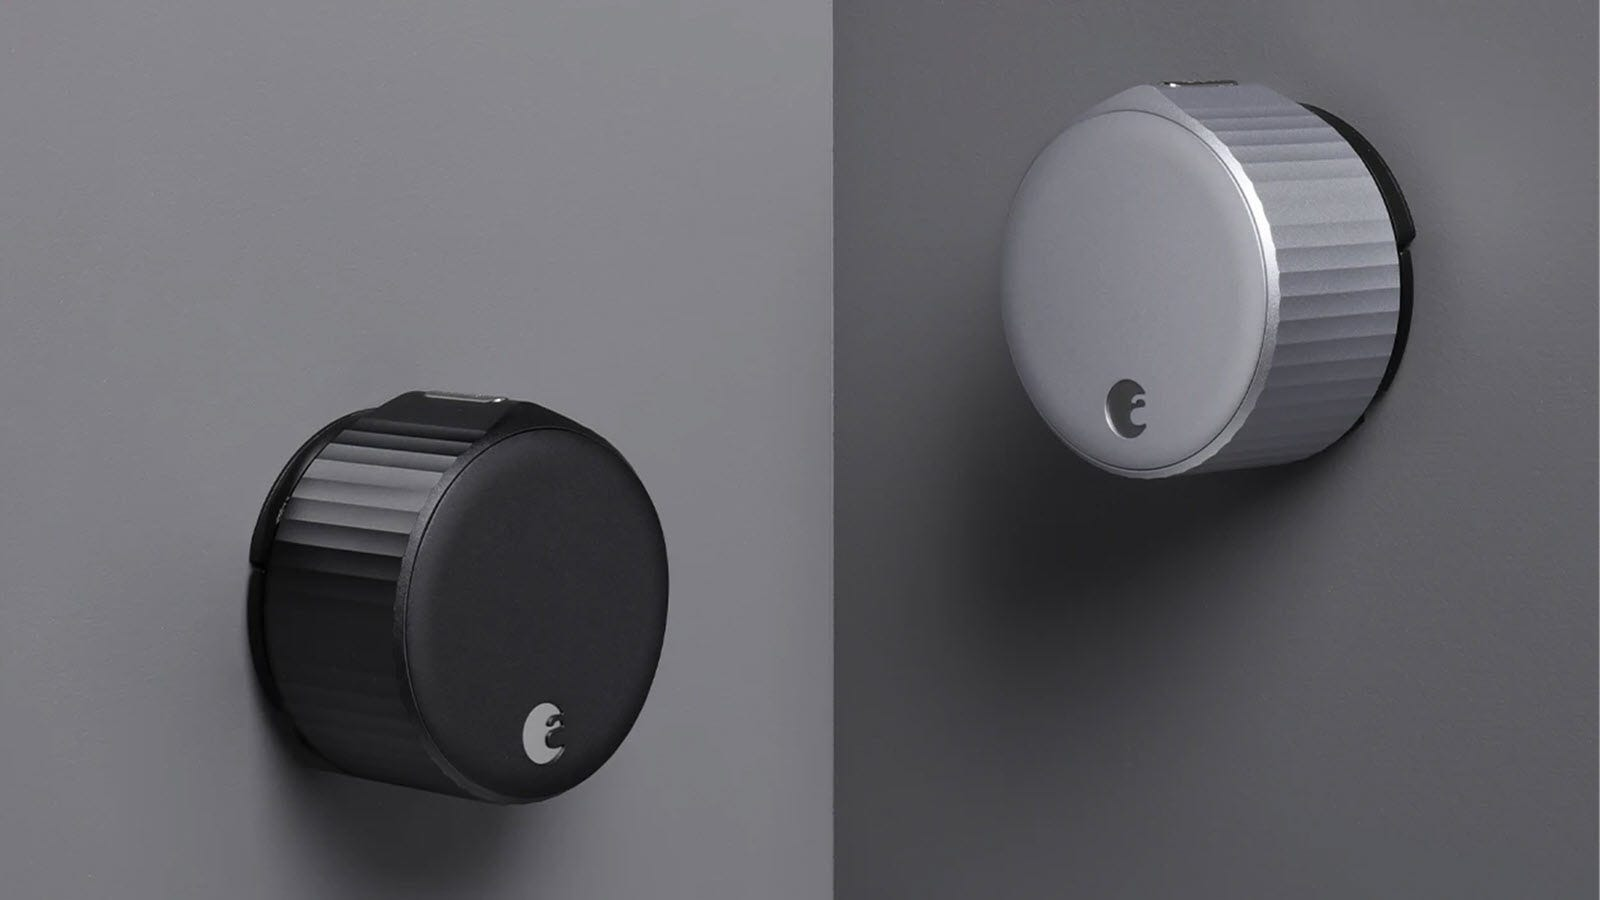 Two August Smart locks in silver and black.